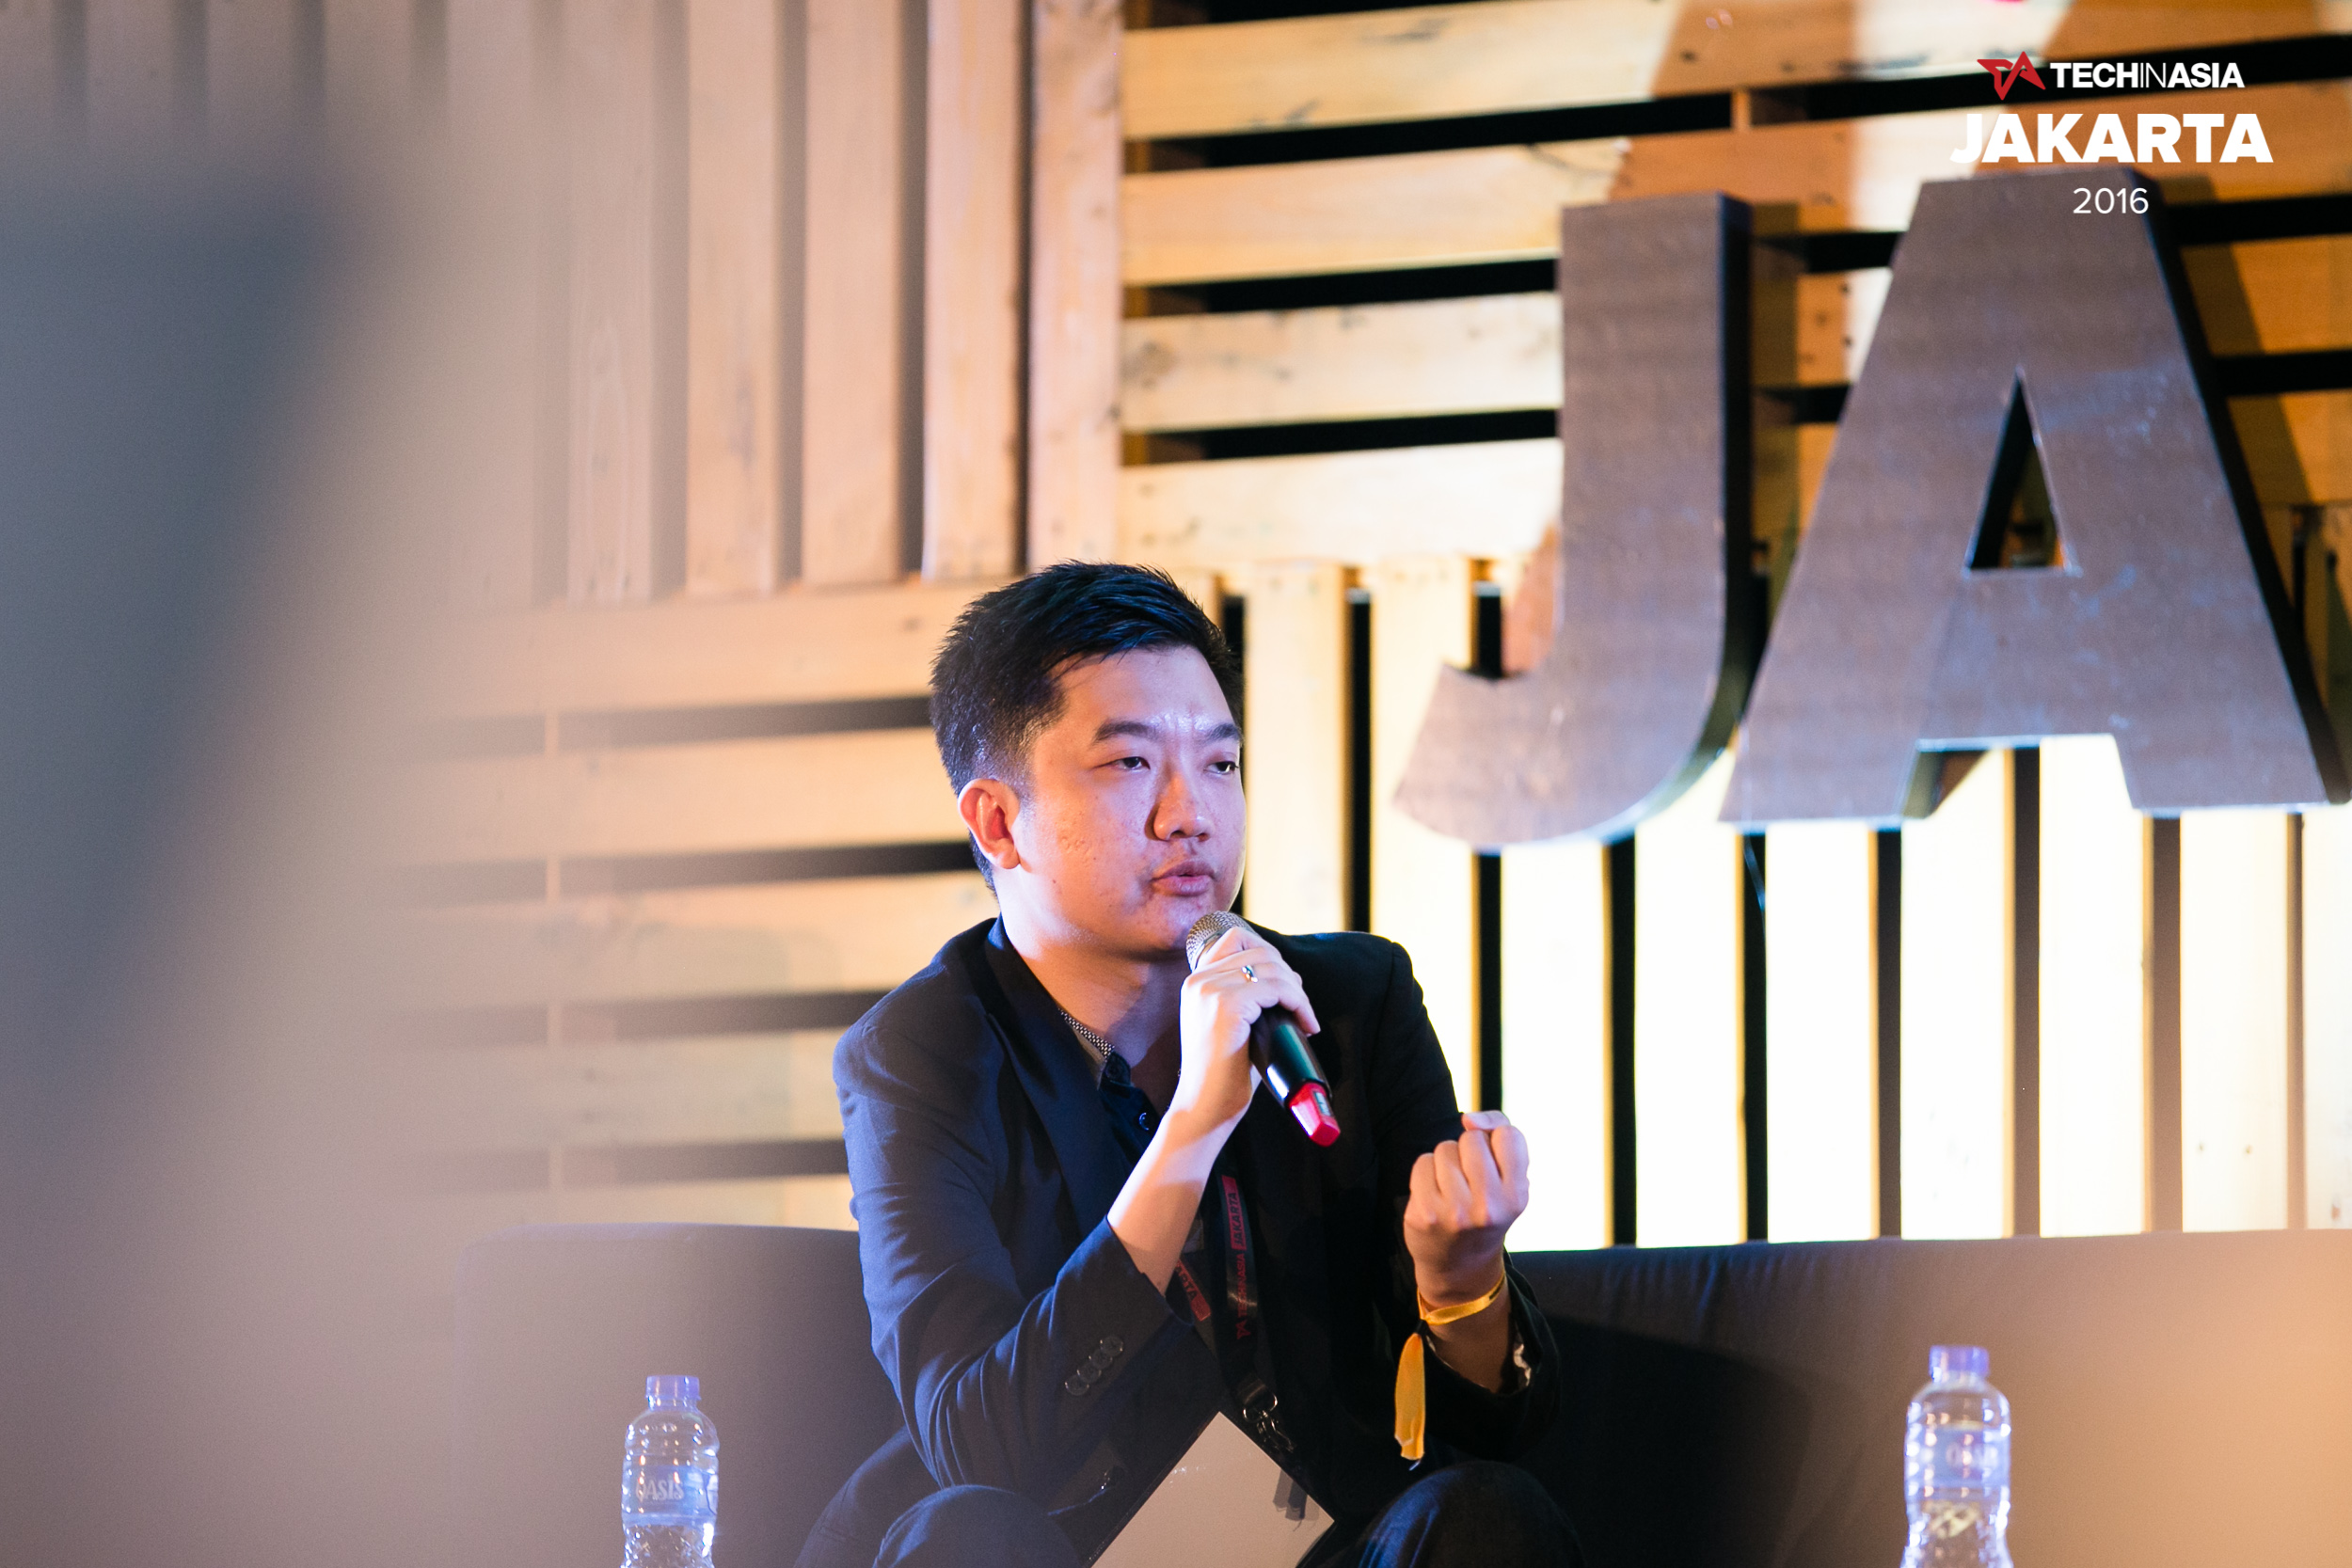 Tokopedia's William Tanuwijaya